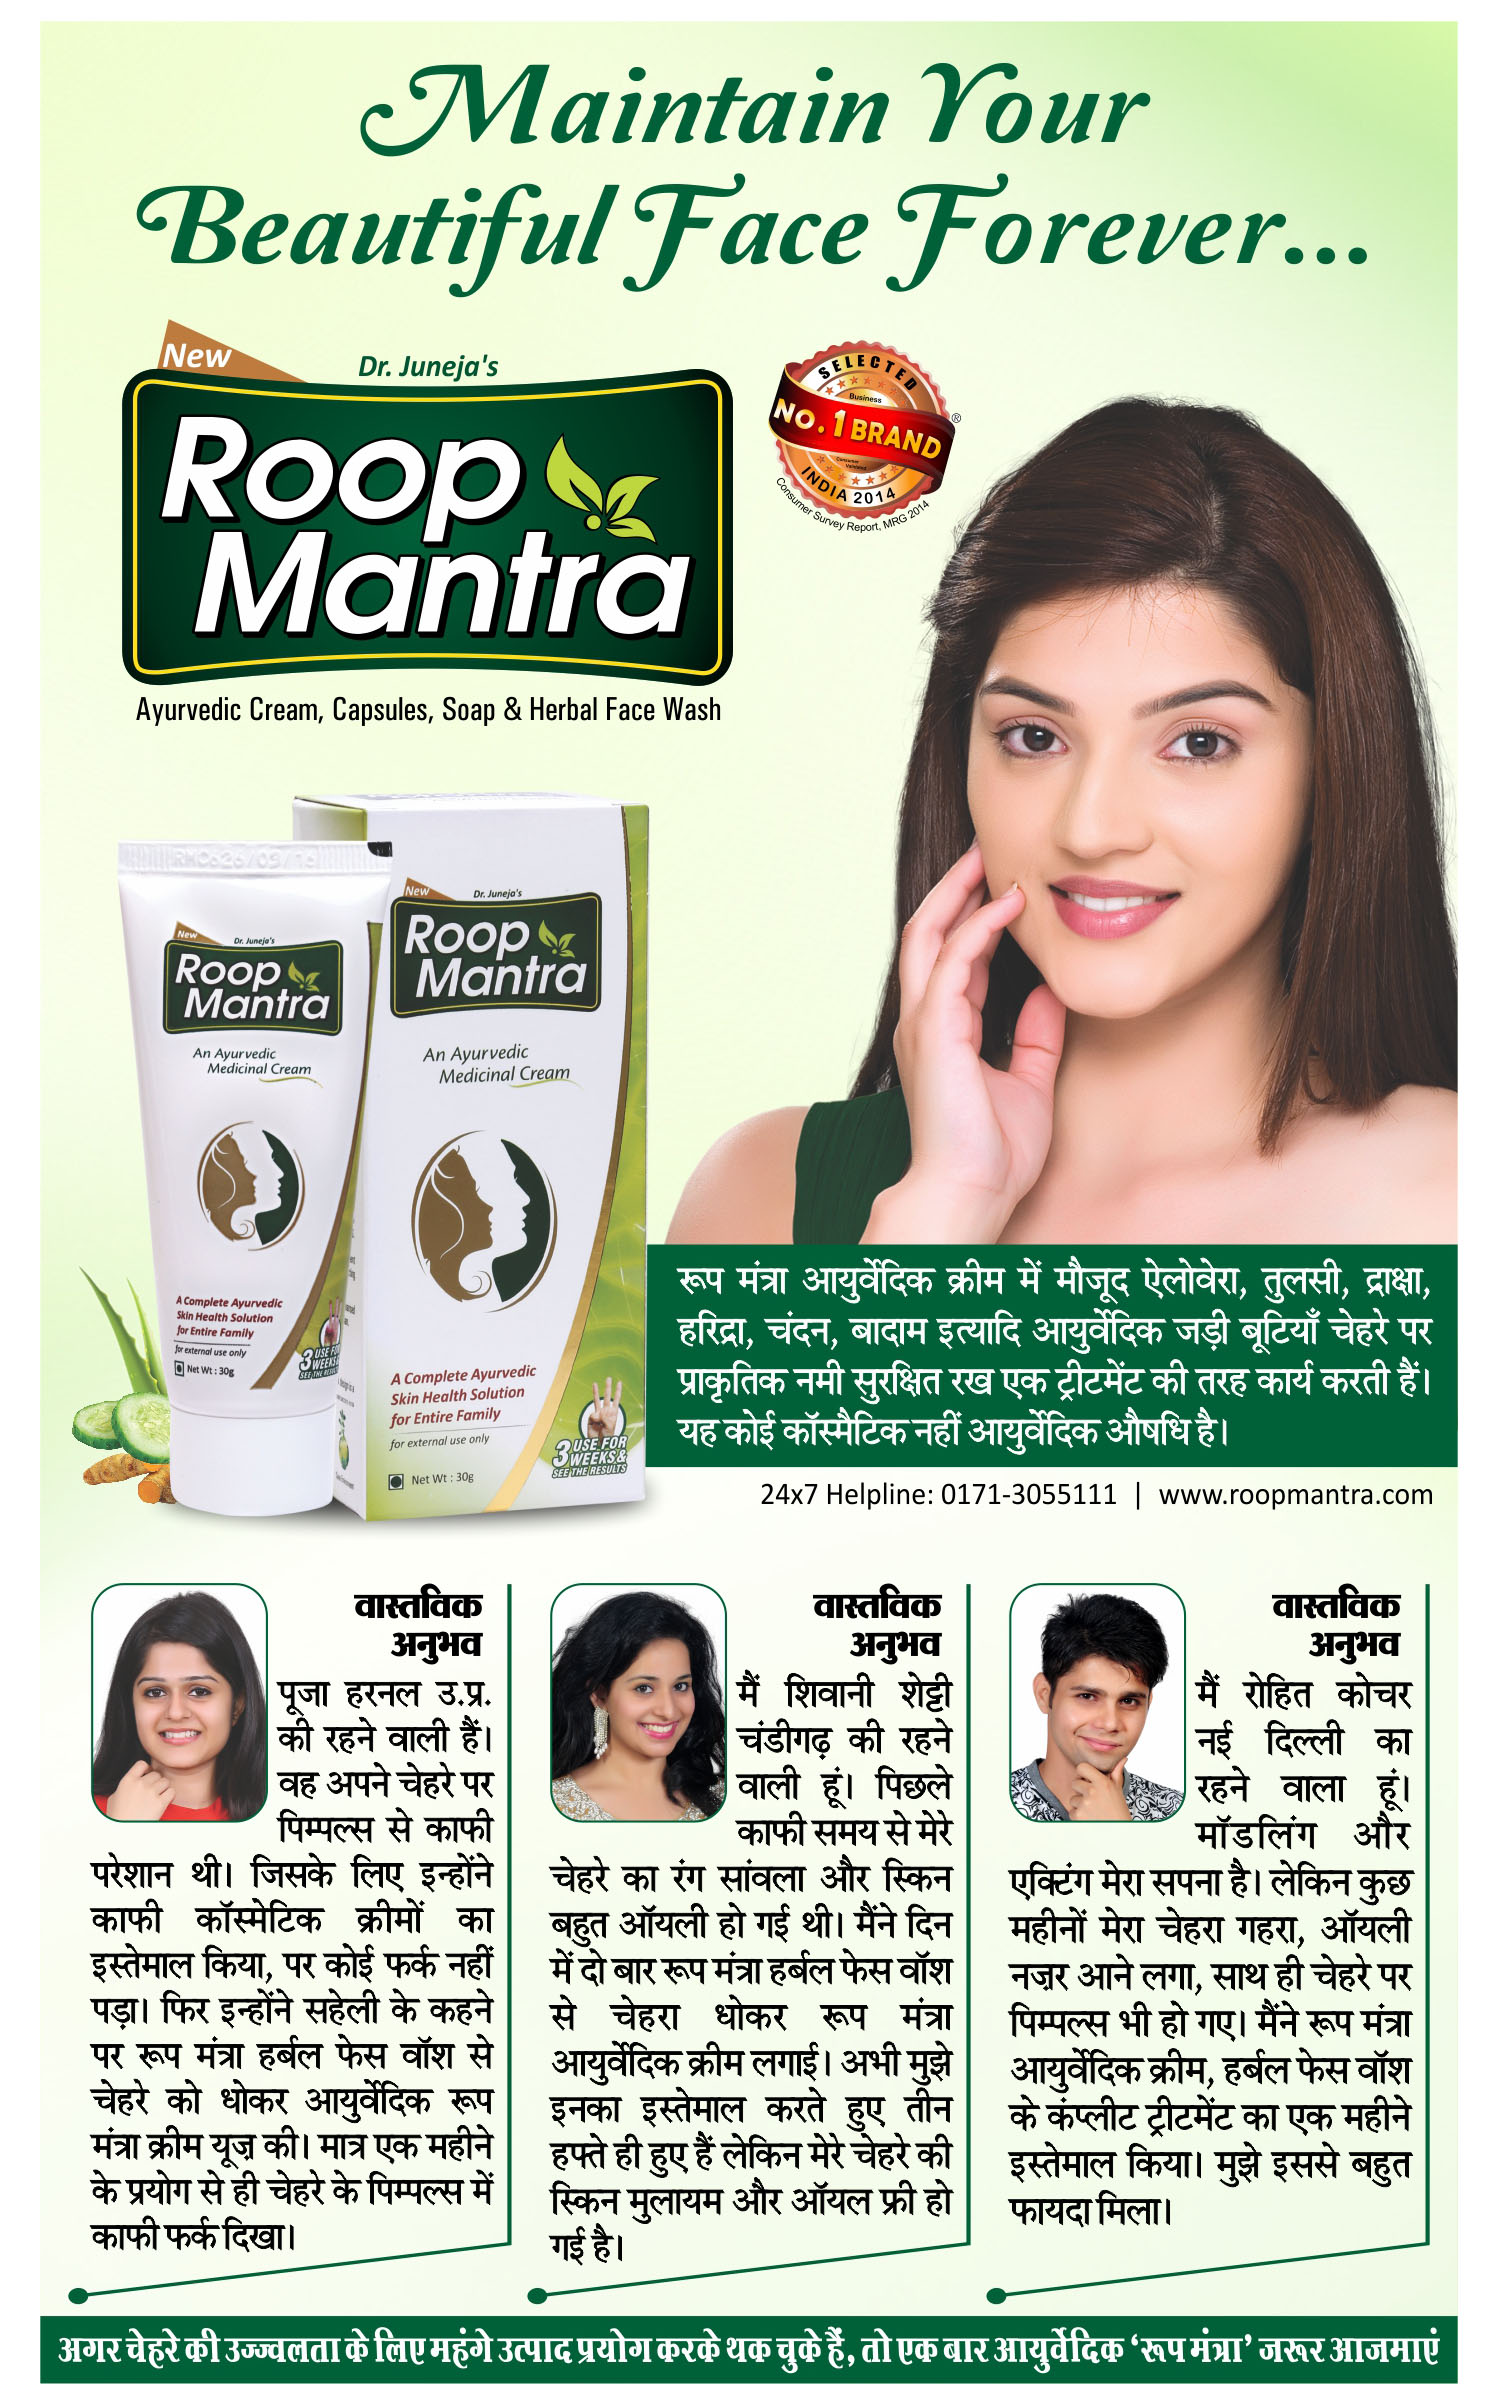 Ayurvedic-fairness-cream-and-fair-look-ayurvedic-cream